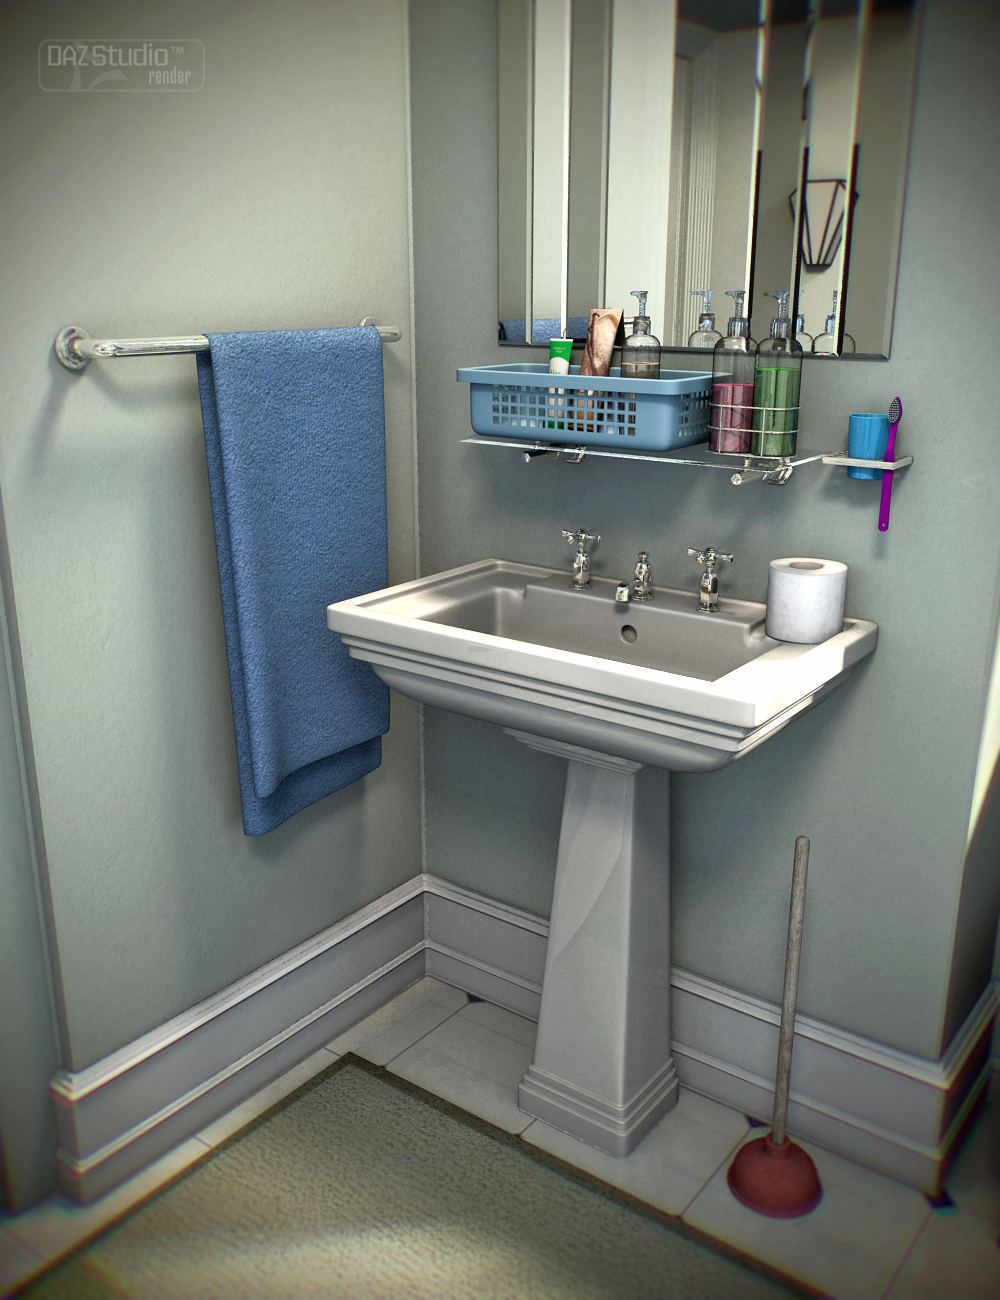 Collective3d Bathroom Stuff by: Collective3d, 3D Models by Daz 3D